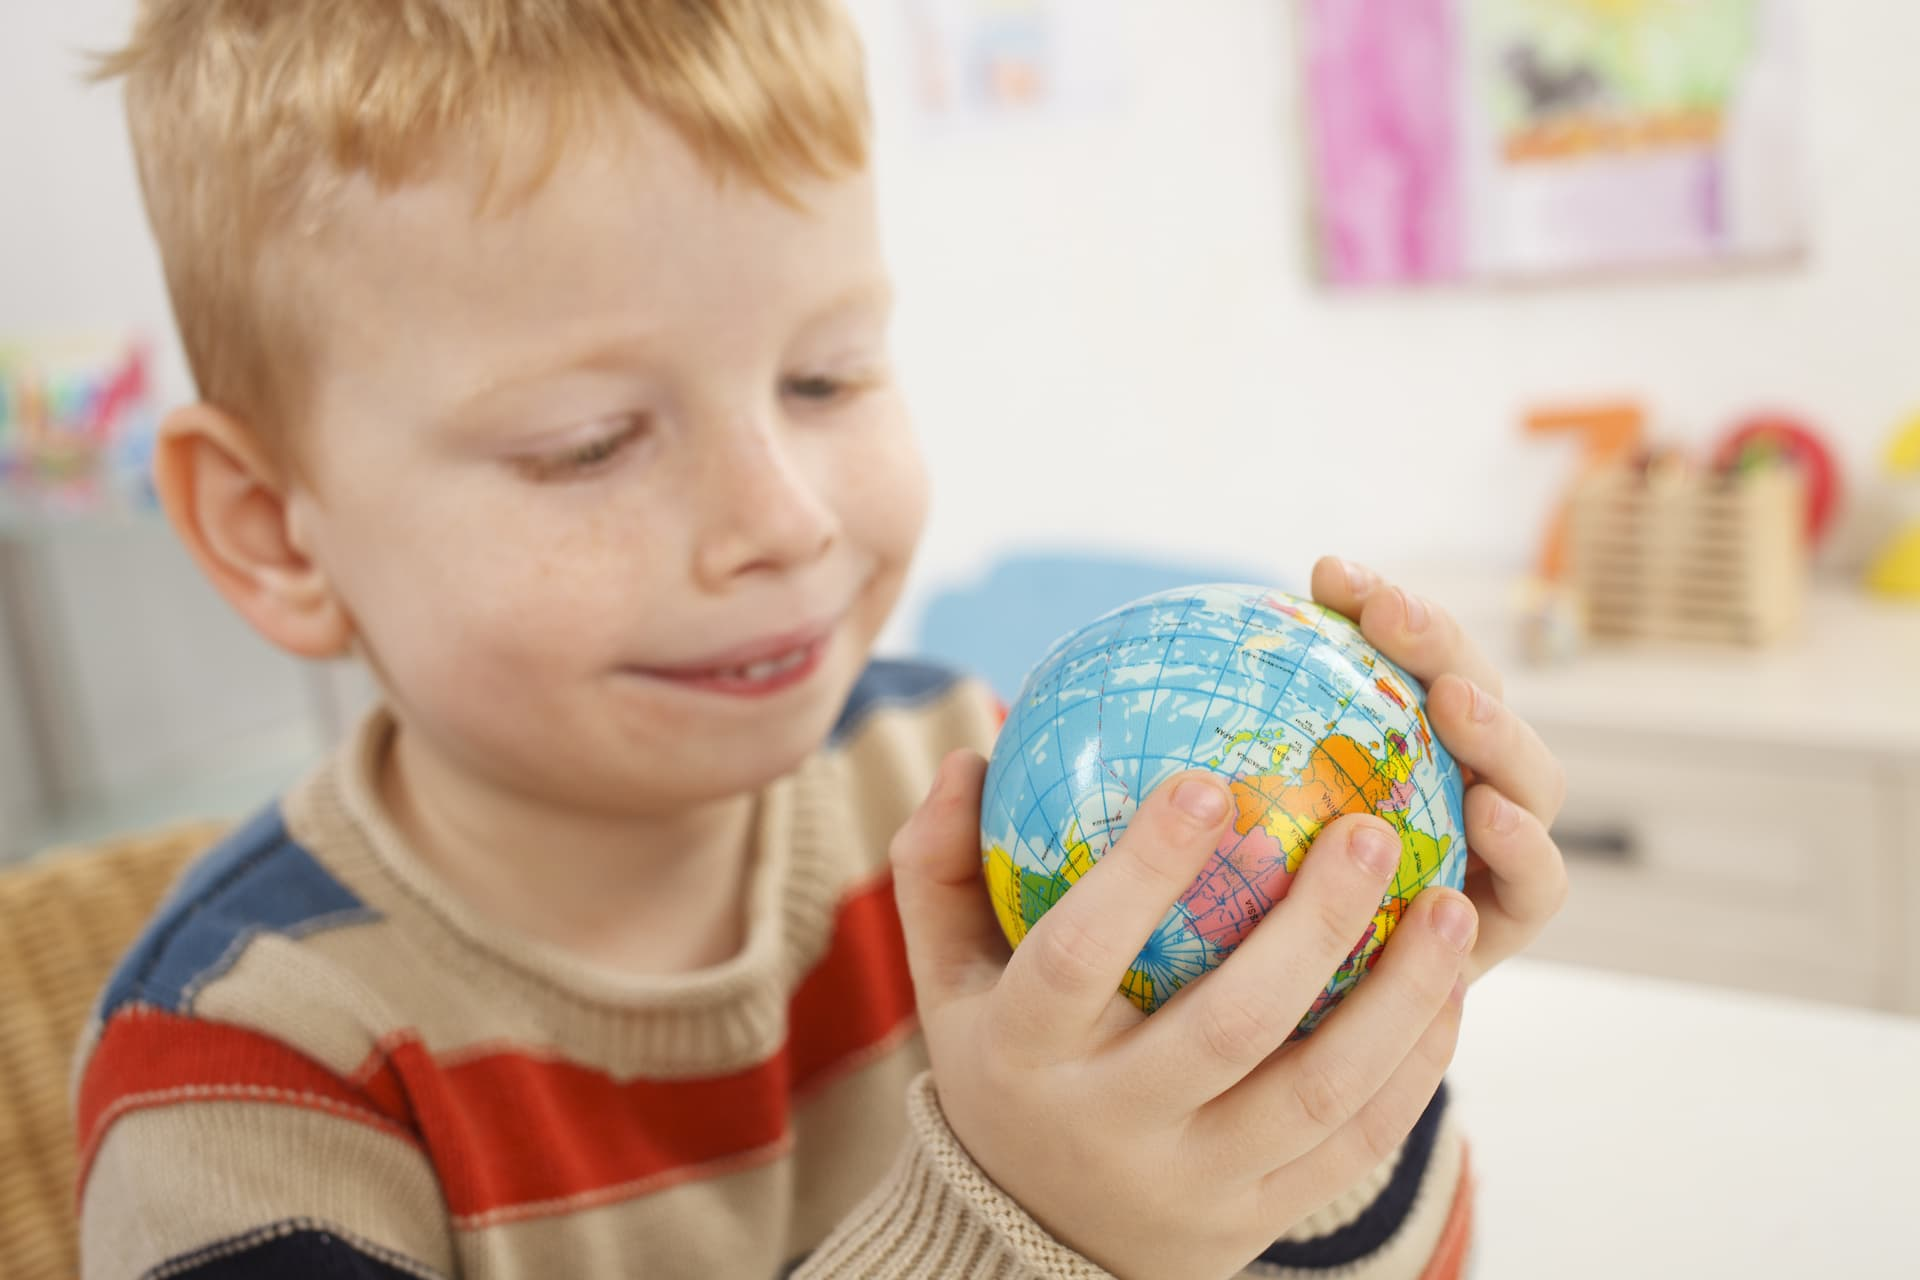 A young boy holding and smiling at a small globe of the world